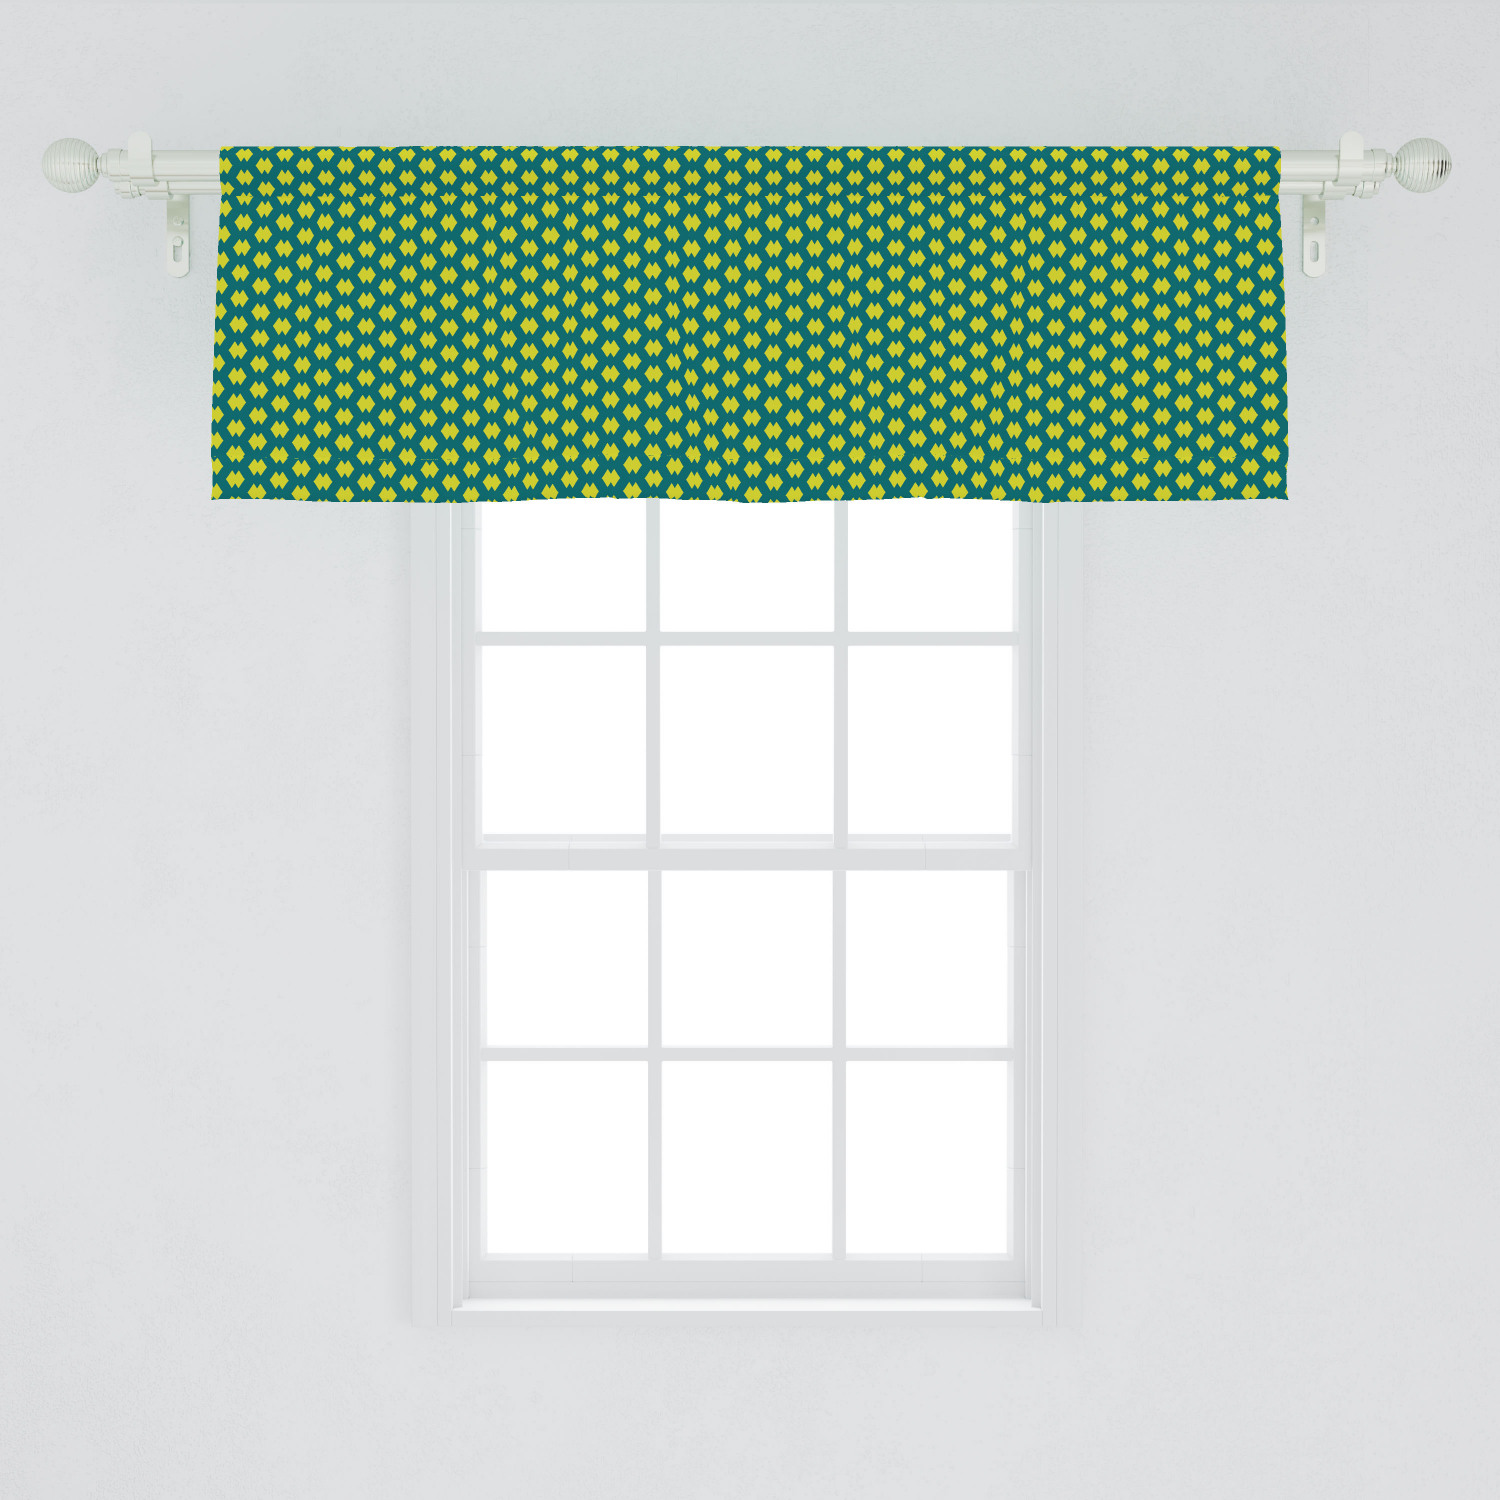 Abstract Window Valance Basic Repetitive Geometric Shapes